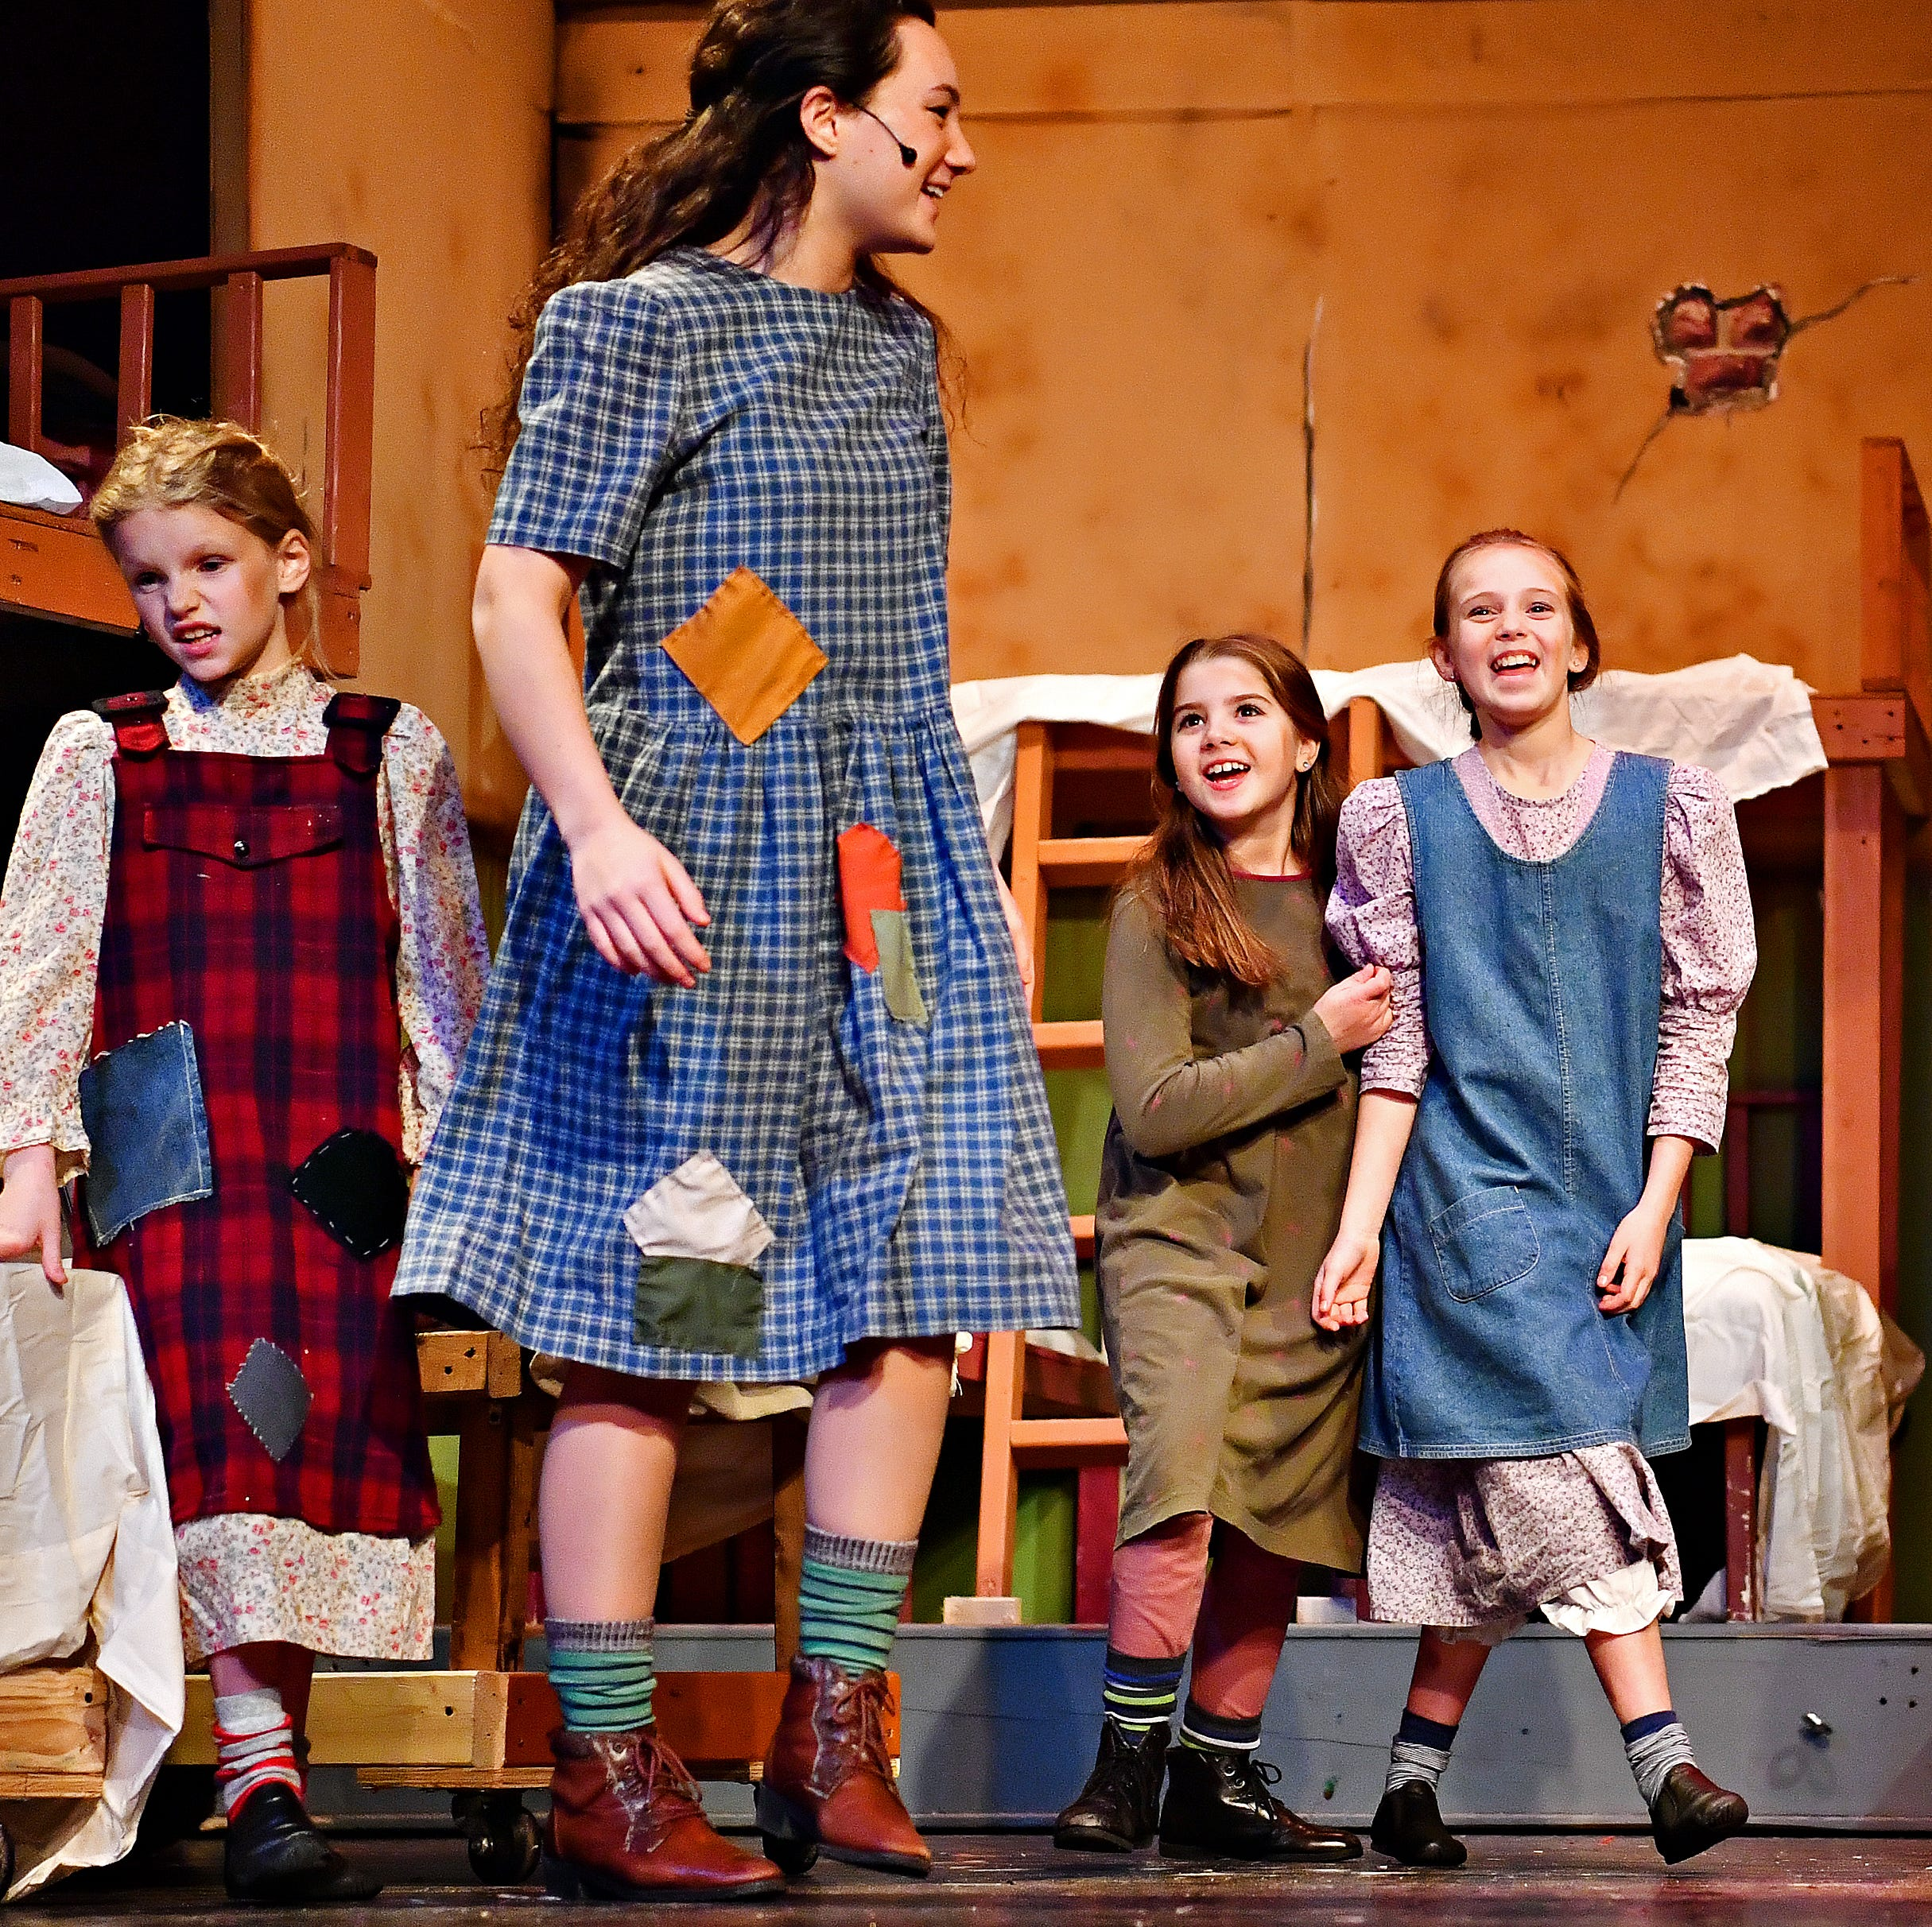 Ella Persing (Orphan), 8, second from right, of Brogue, joins other orphans during a dress rehearsal for the upcoming performance of Annie at The Belmont Theatre in Spring Garden Township, Wednesday, Nov. 14, 2018. The production runs Nov. 16-18 and 23-25 with performances on Fridays at Saturdays at 7:30 p.m., Sundays at 3 p.m., with an additional matinee performance on Saturday, Nov. 24, at 2 p.m. For more information go to: https://www.thebelmont.org/. Dawn J. Sagert photo